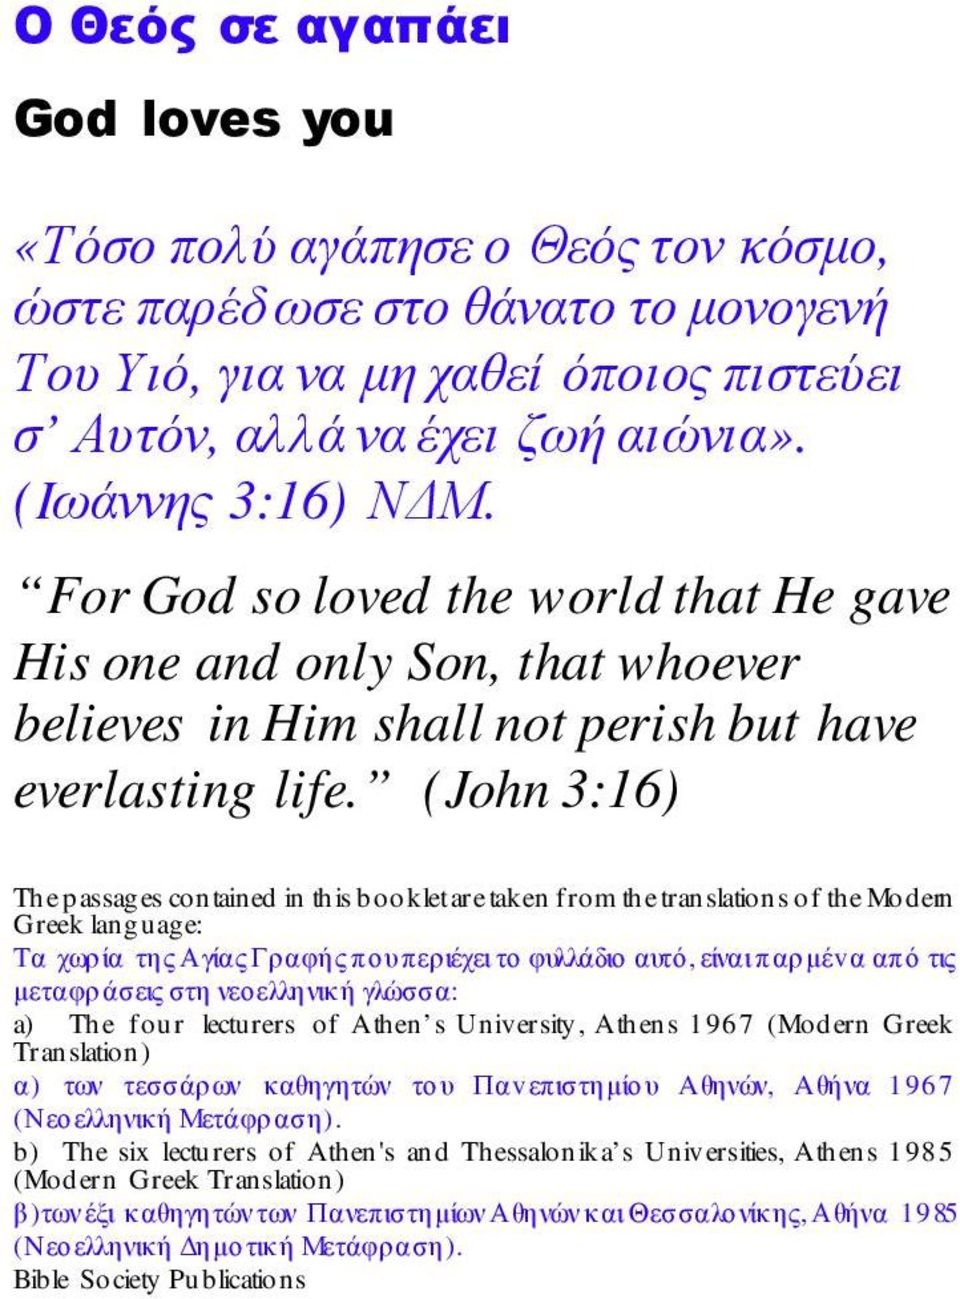 (John 3:16) The passages contained in this booklet are taken from the translations of the Modern Greek language: Τα χωρία της Αγίας Γραφής που περιέχει το φυλλάδιο αυτό, είναι παρµέvα από τις